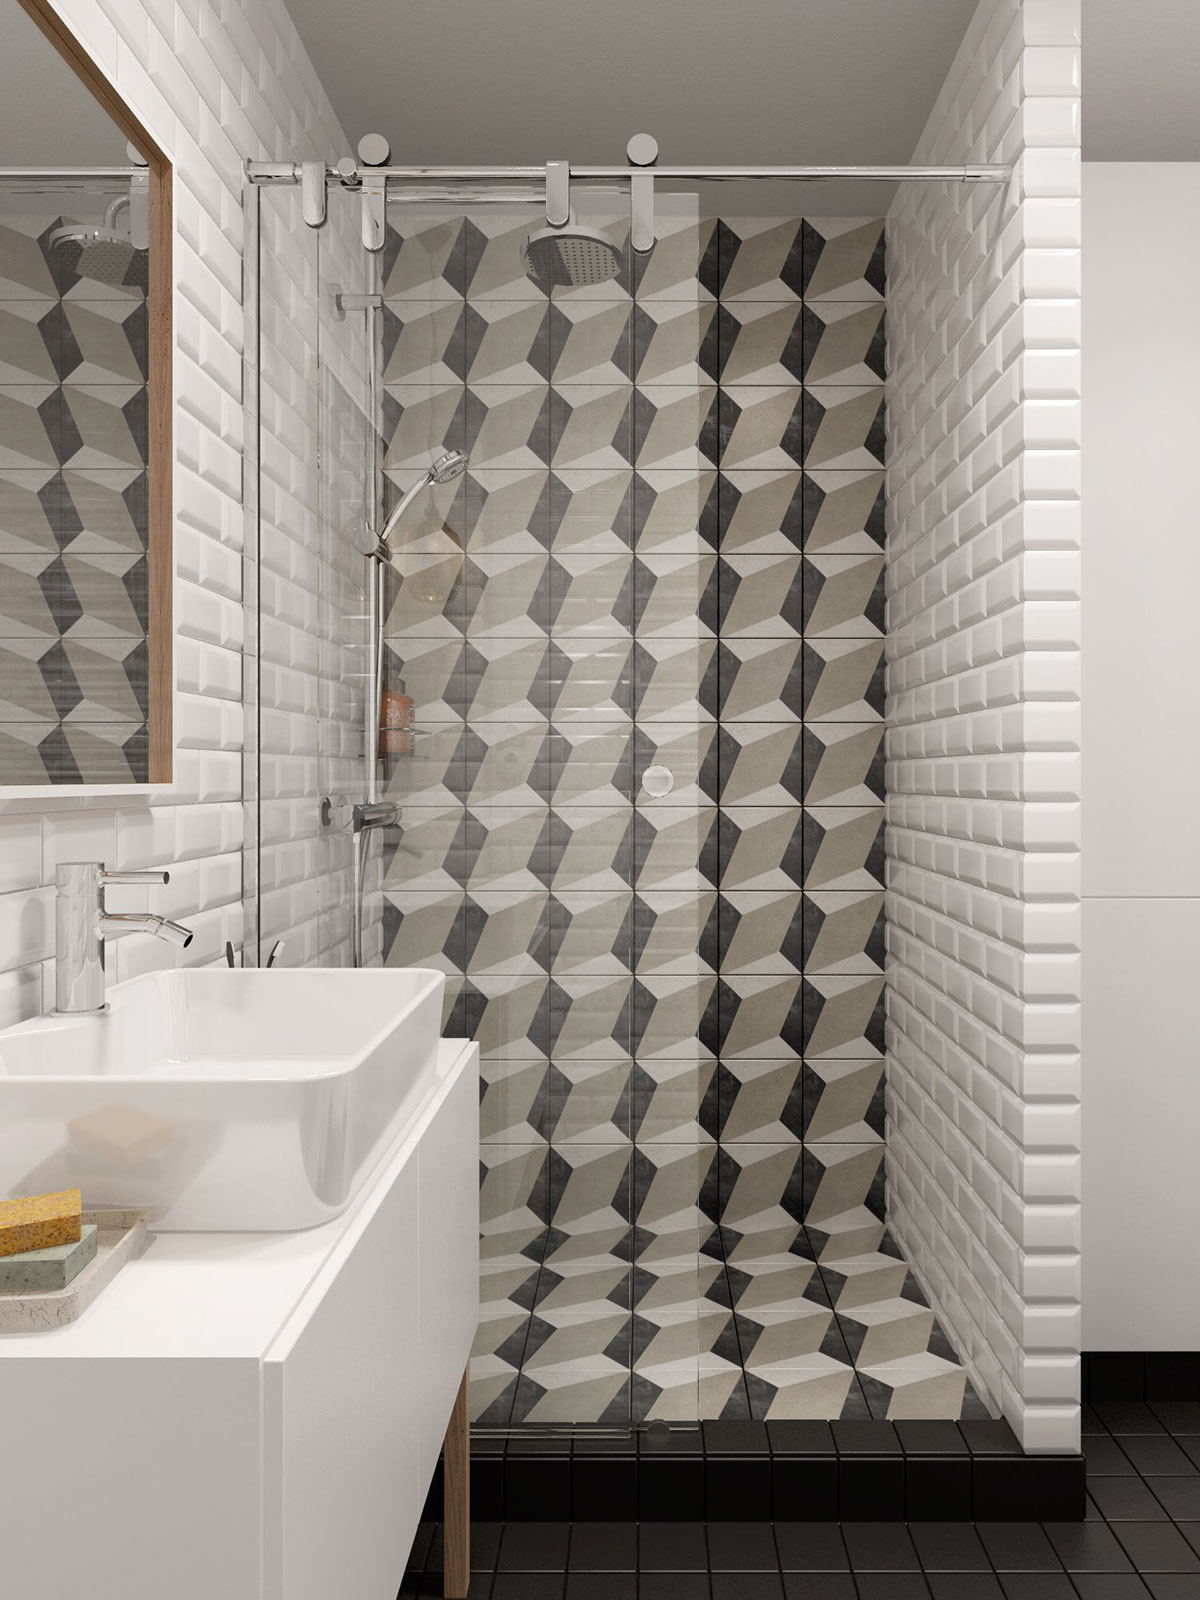 Cool Tiled Shower - A midcentury inspired apartment with scandinavian tendencies